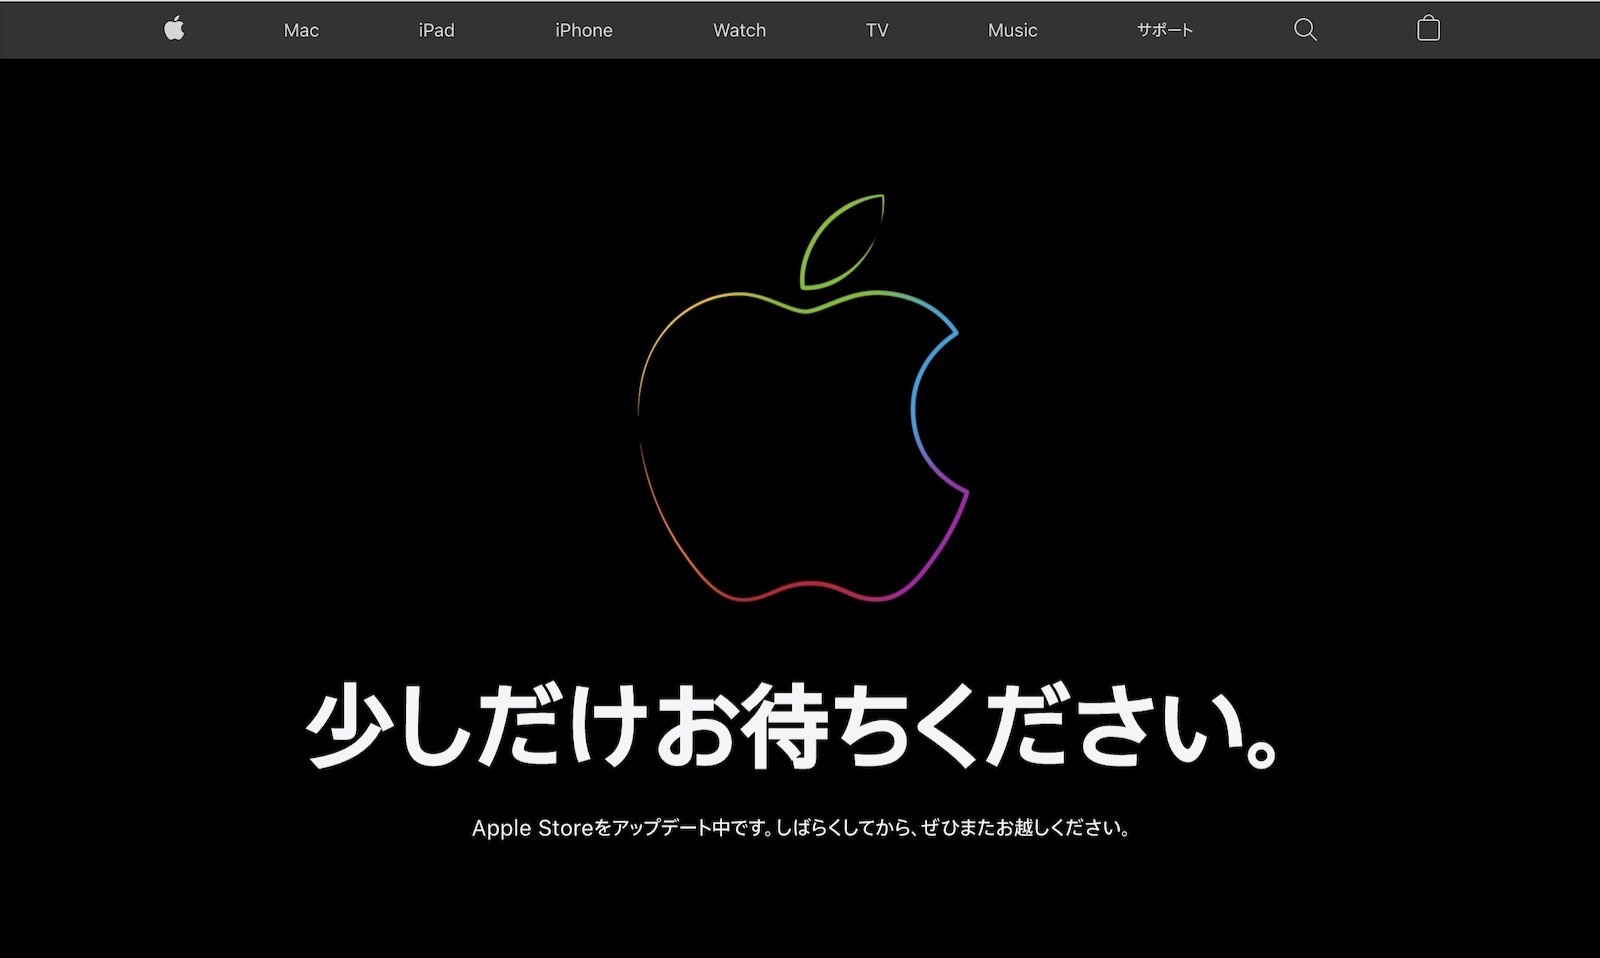 Apple store sitemap is down